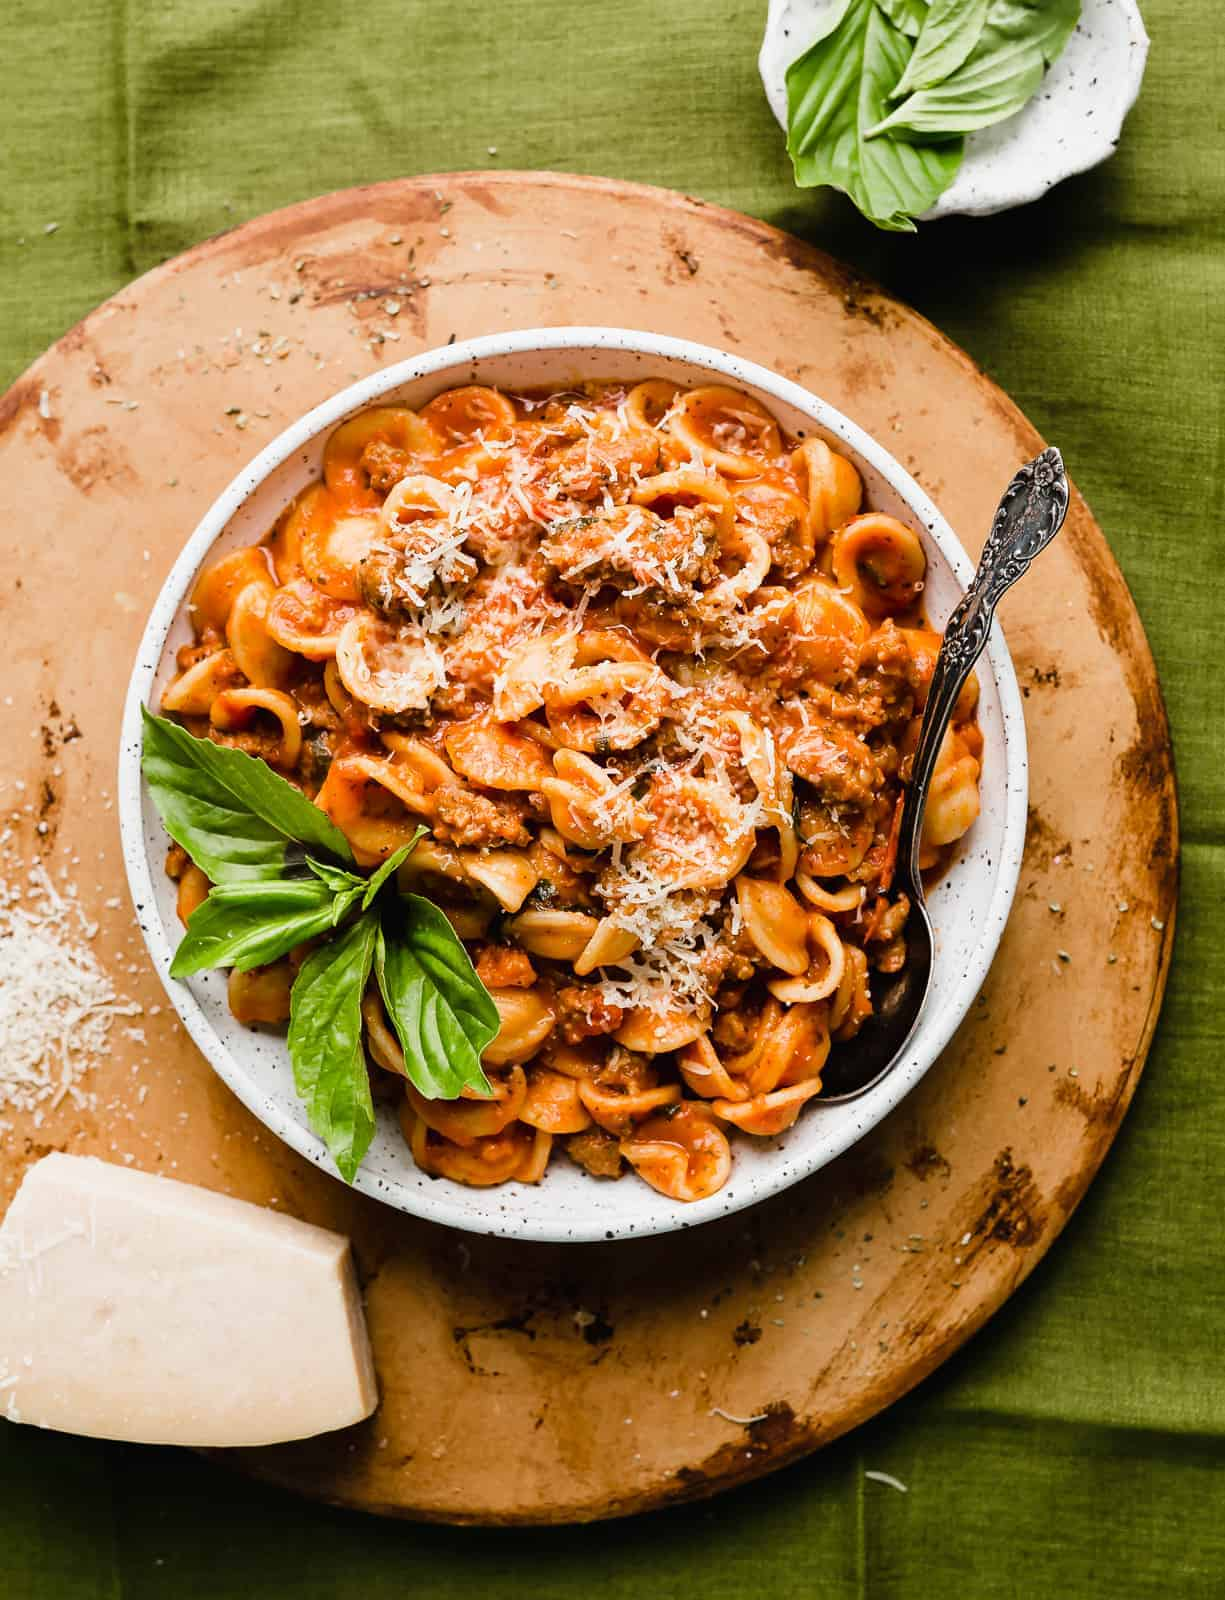 Bolognese sauce tossed with noodles, in a large white bowl.